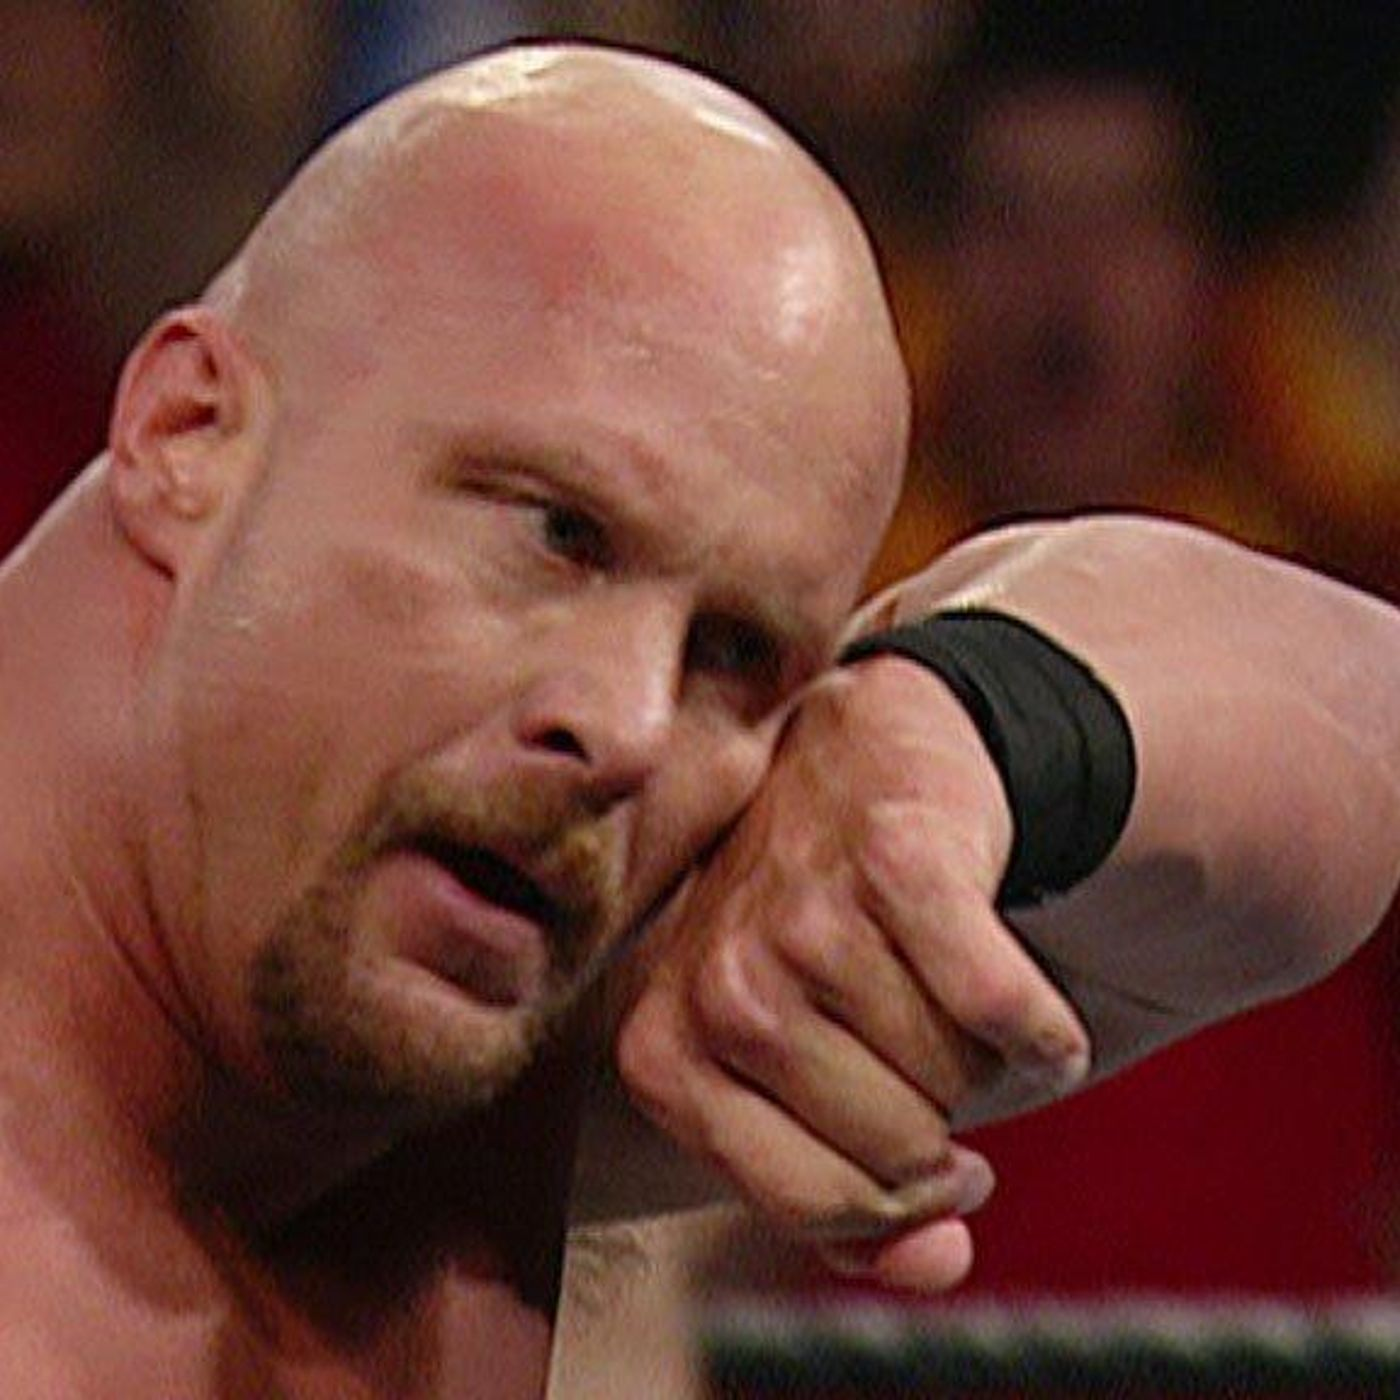 *RETRO - Originally Aired 5/5/19* Wrestling Nostalgia: No Way Out 2003 - Stone Cold Returns to Face Eric Bischoff